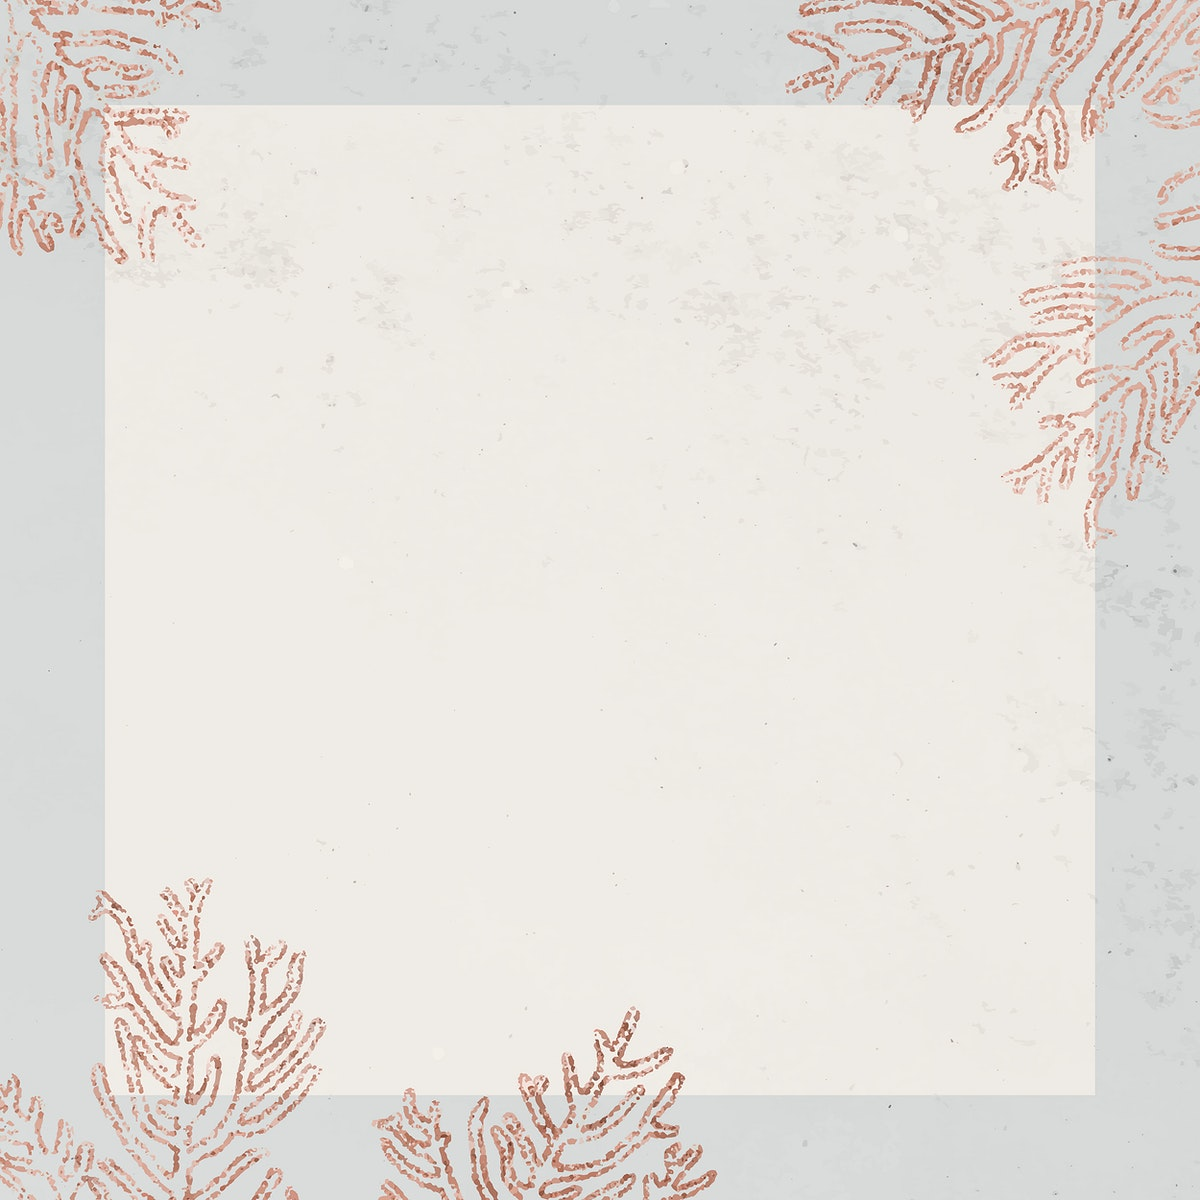 Blank square coral frame vector